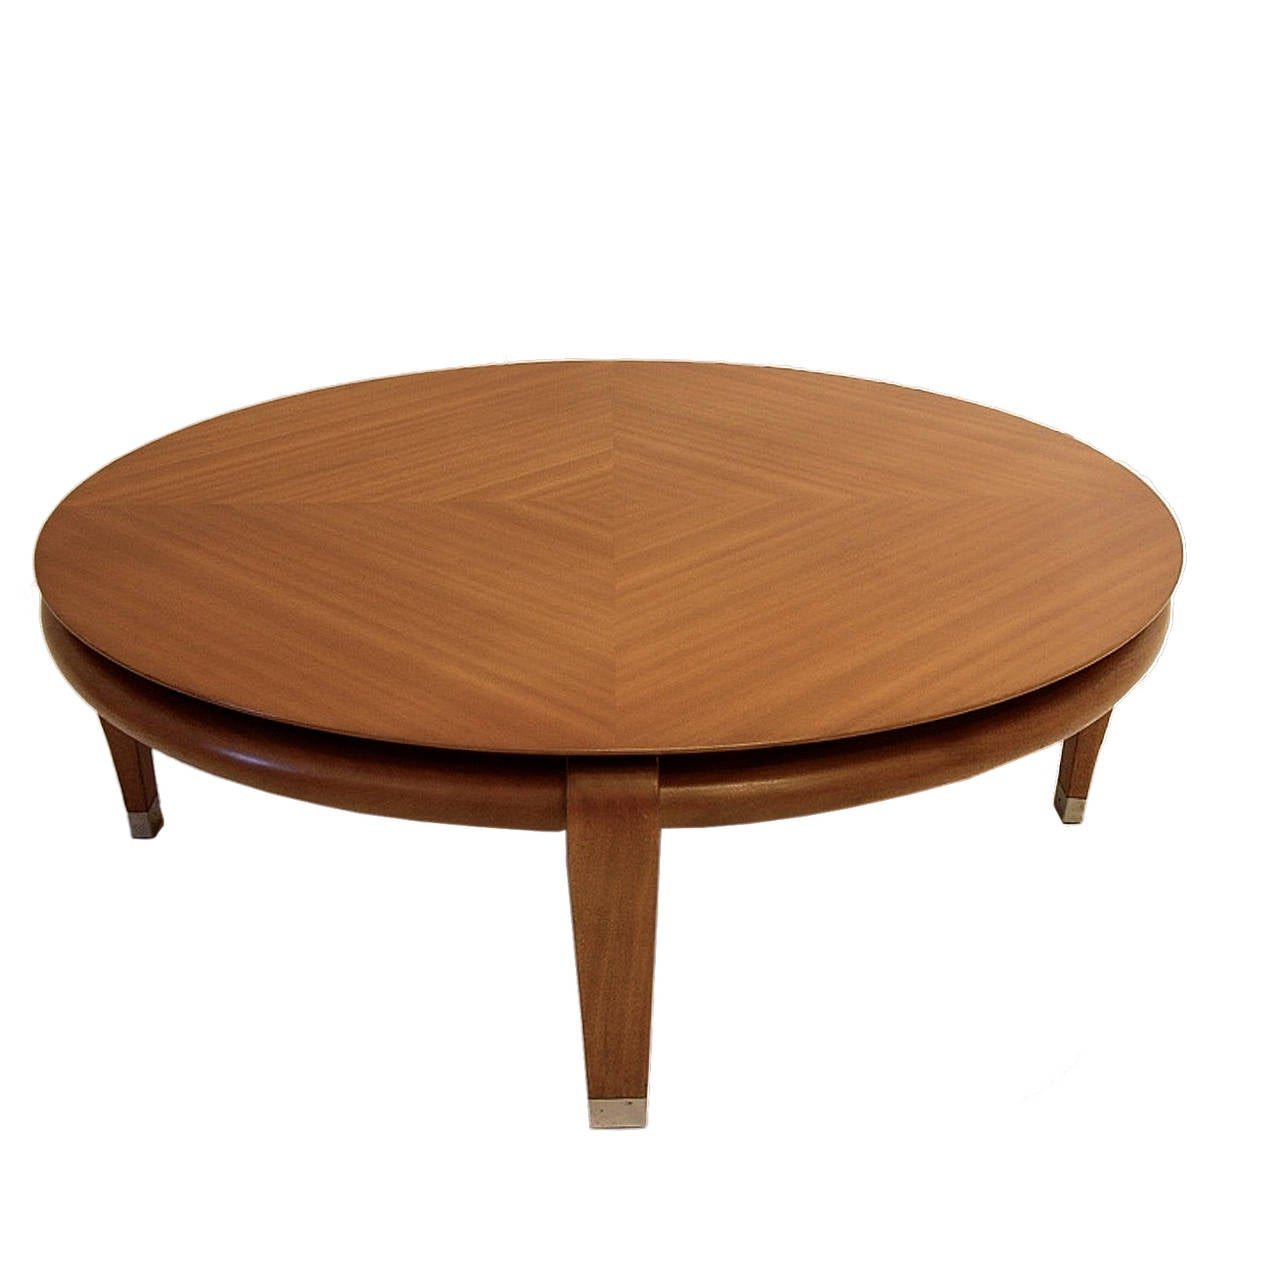 Paul Laszlo for Brown Saltman Round Coffee Table in Mahogany